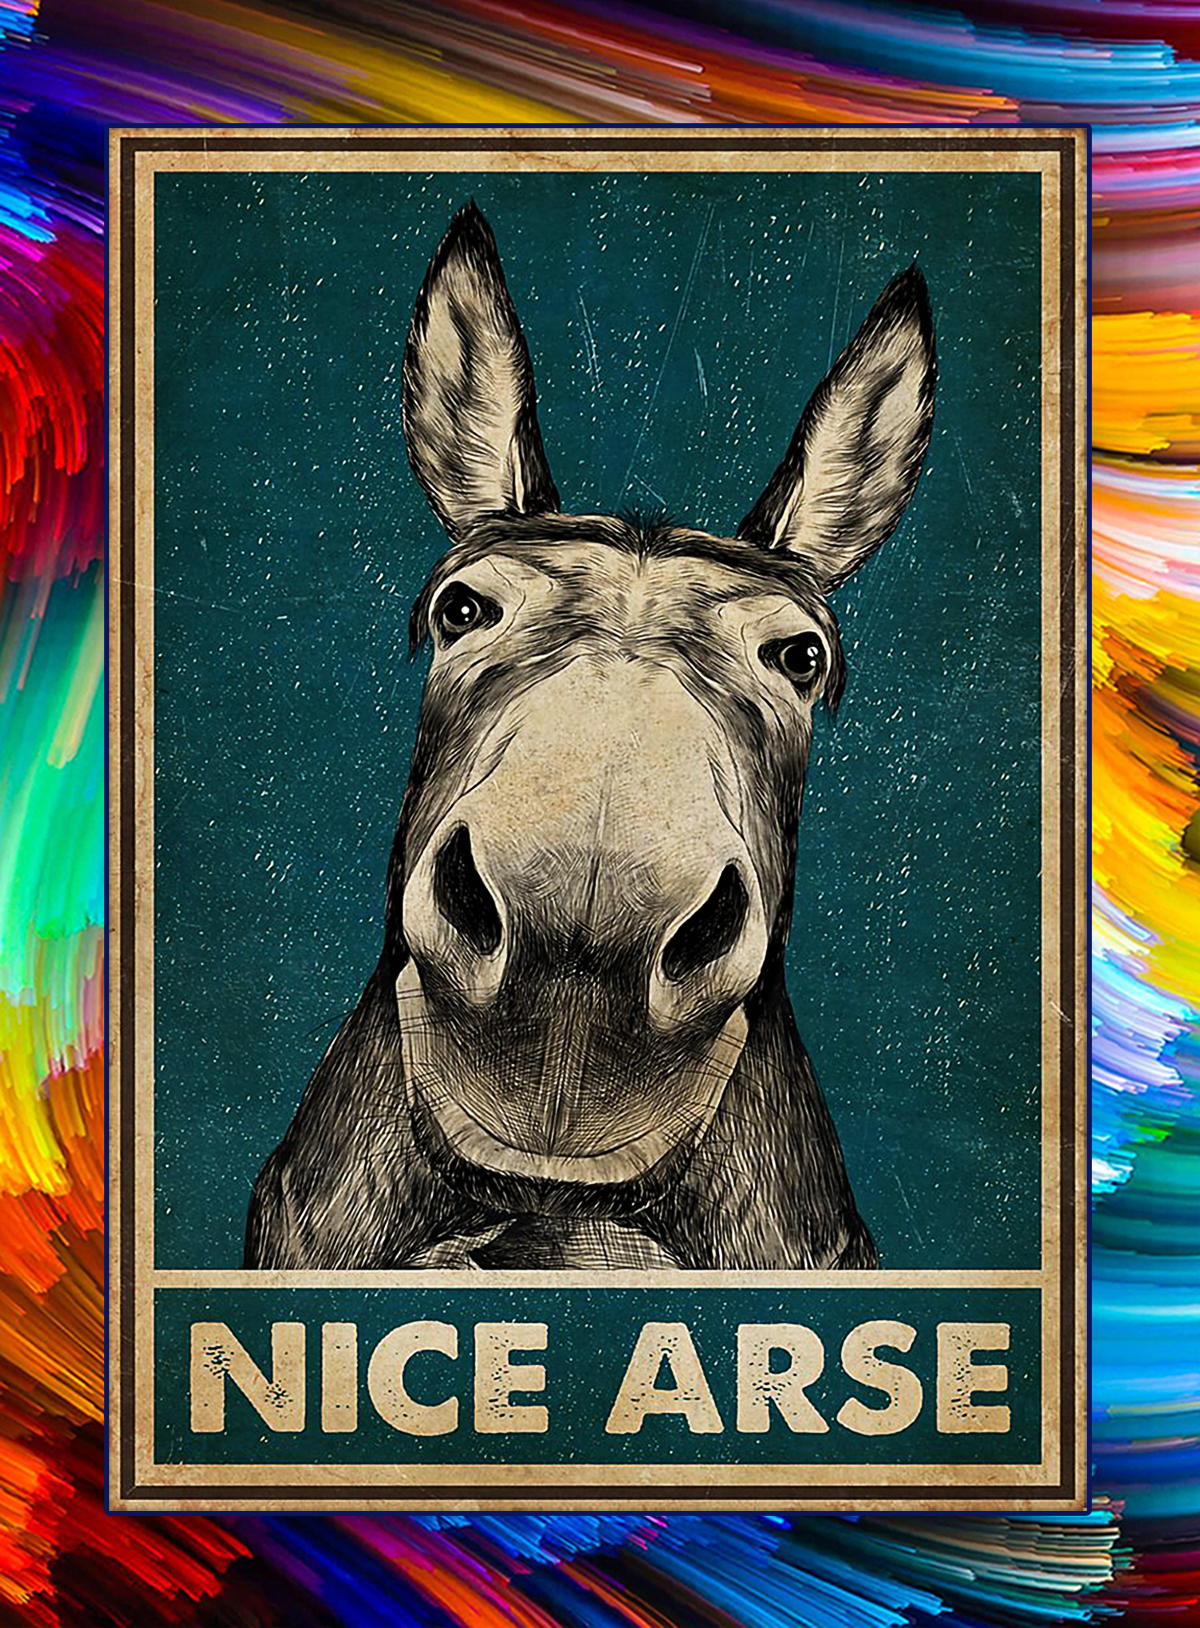 Nice arse donkey poster - A1